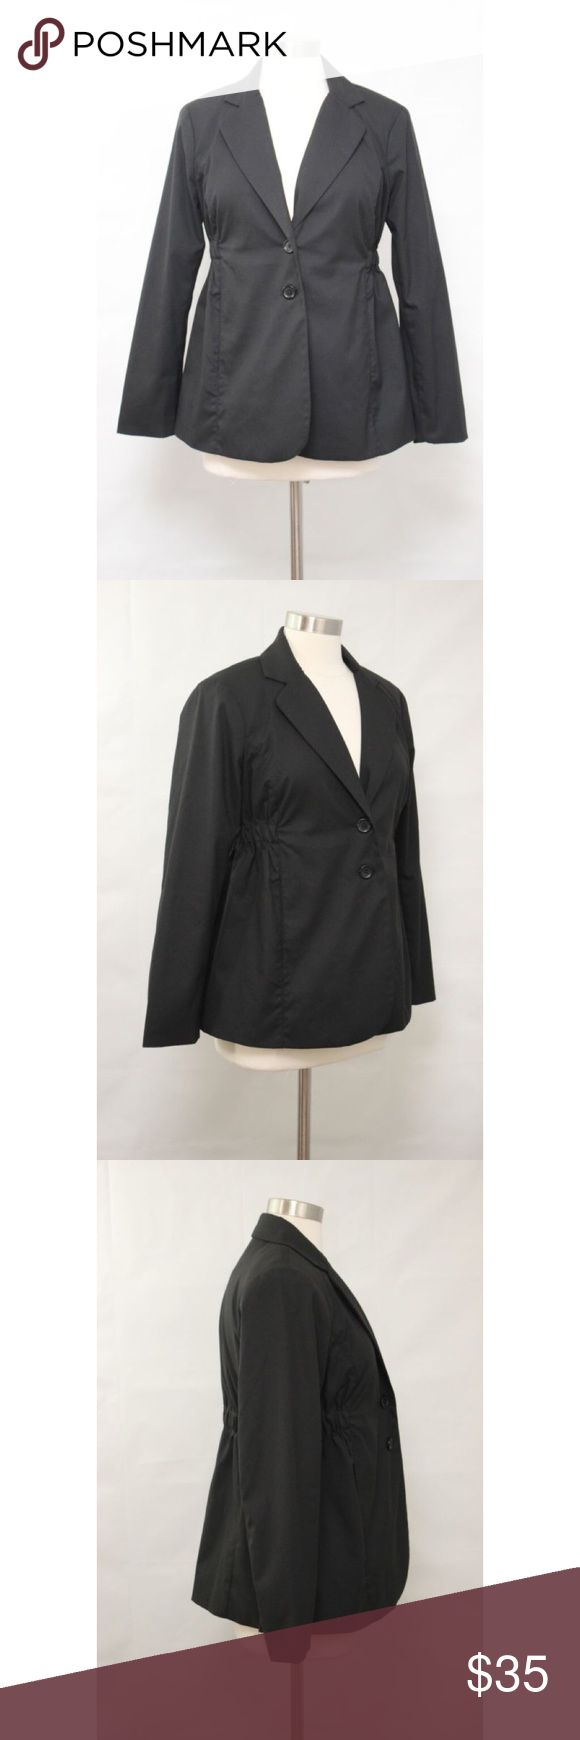 """Motherhood Maternity Special Edition Black Blazer Motherhood Maternity Special Edition Black Career Blazer.  Measurements (flat / un-stretched): Tagged Size: M Bust: 39"""" Sleeve: 24"""" Length (shoulder to hemline): 25½"""" Motherhood Maternity Jackets & Coats Blazers"""